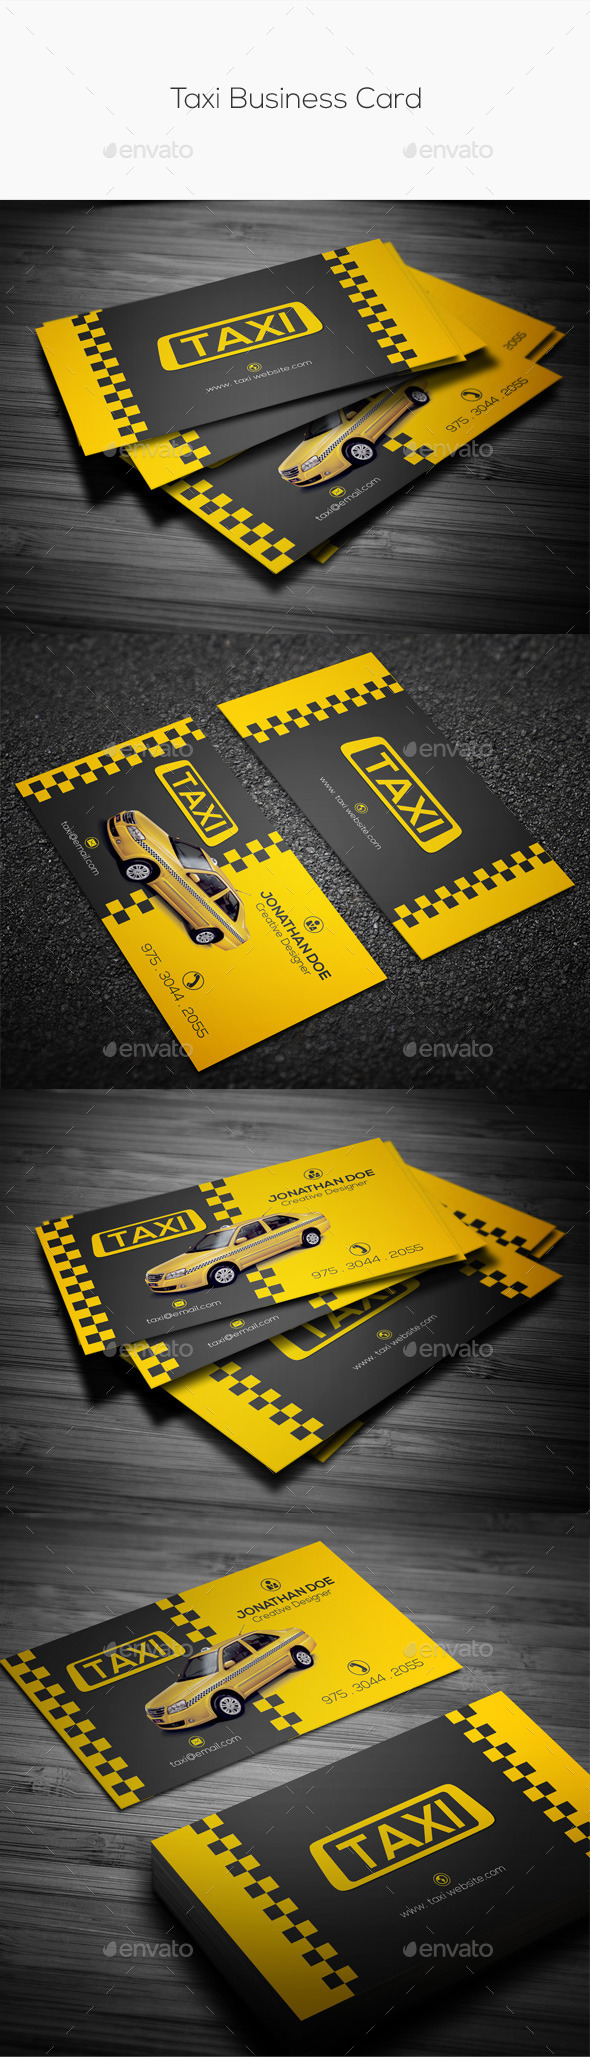 GraphicRiver Taxi Business Card 11051930